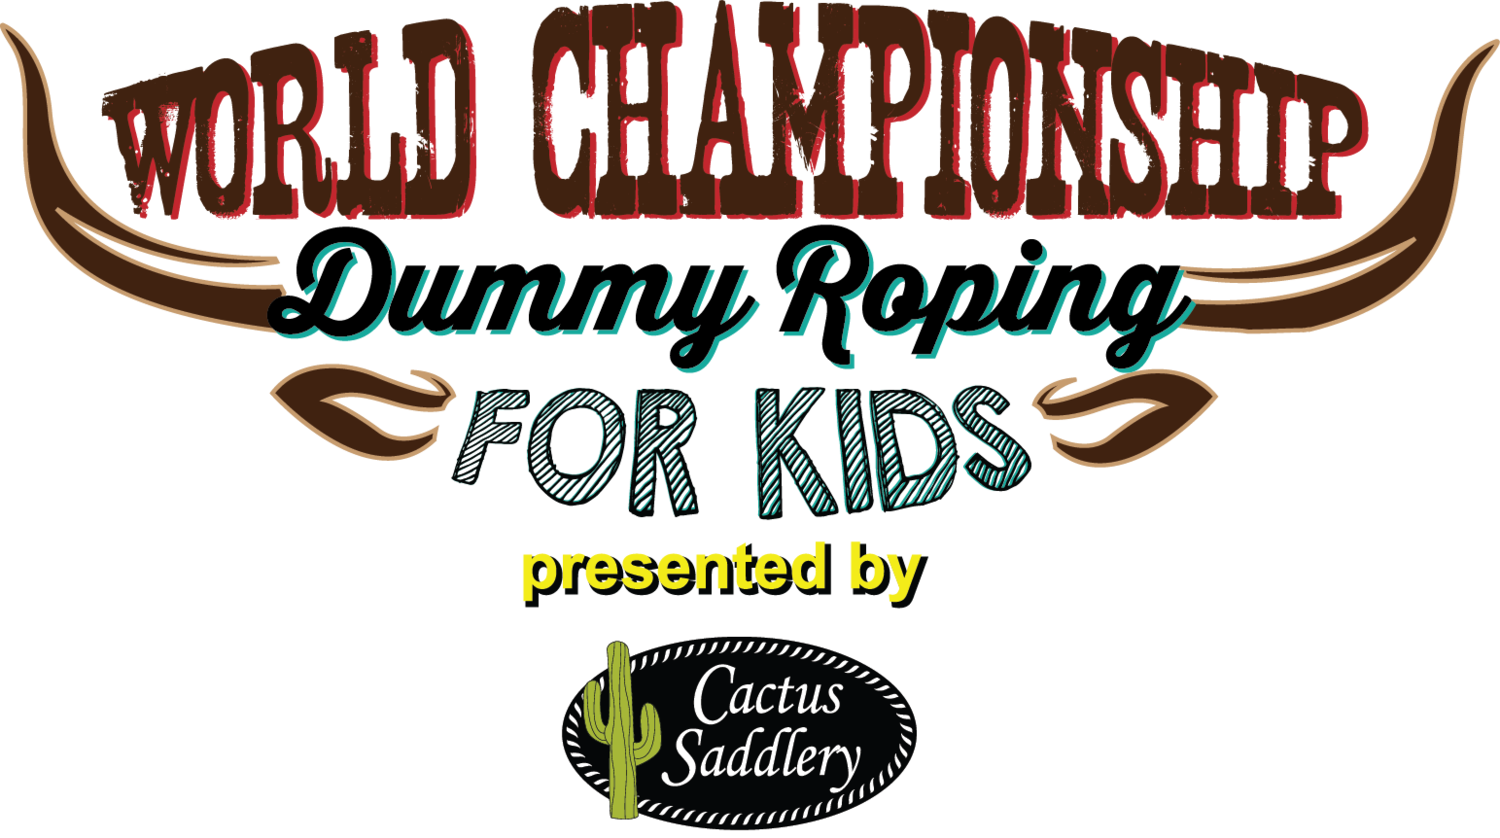 World Championship Dummy Roping